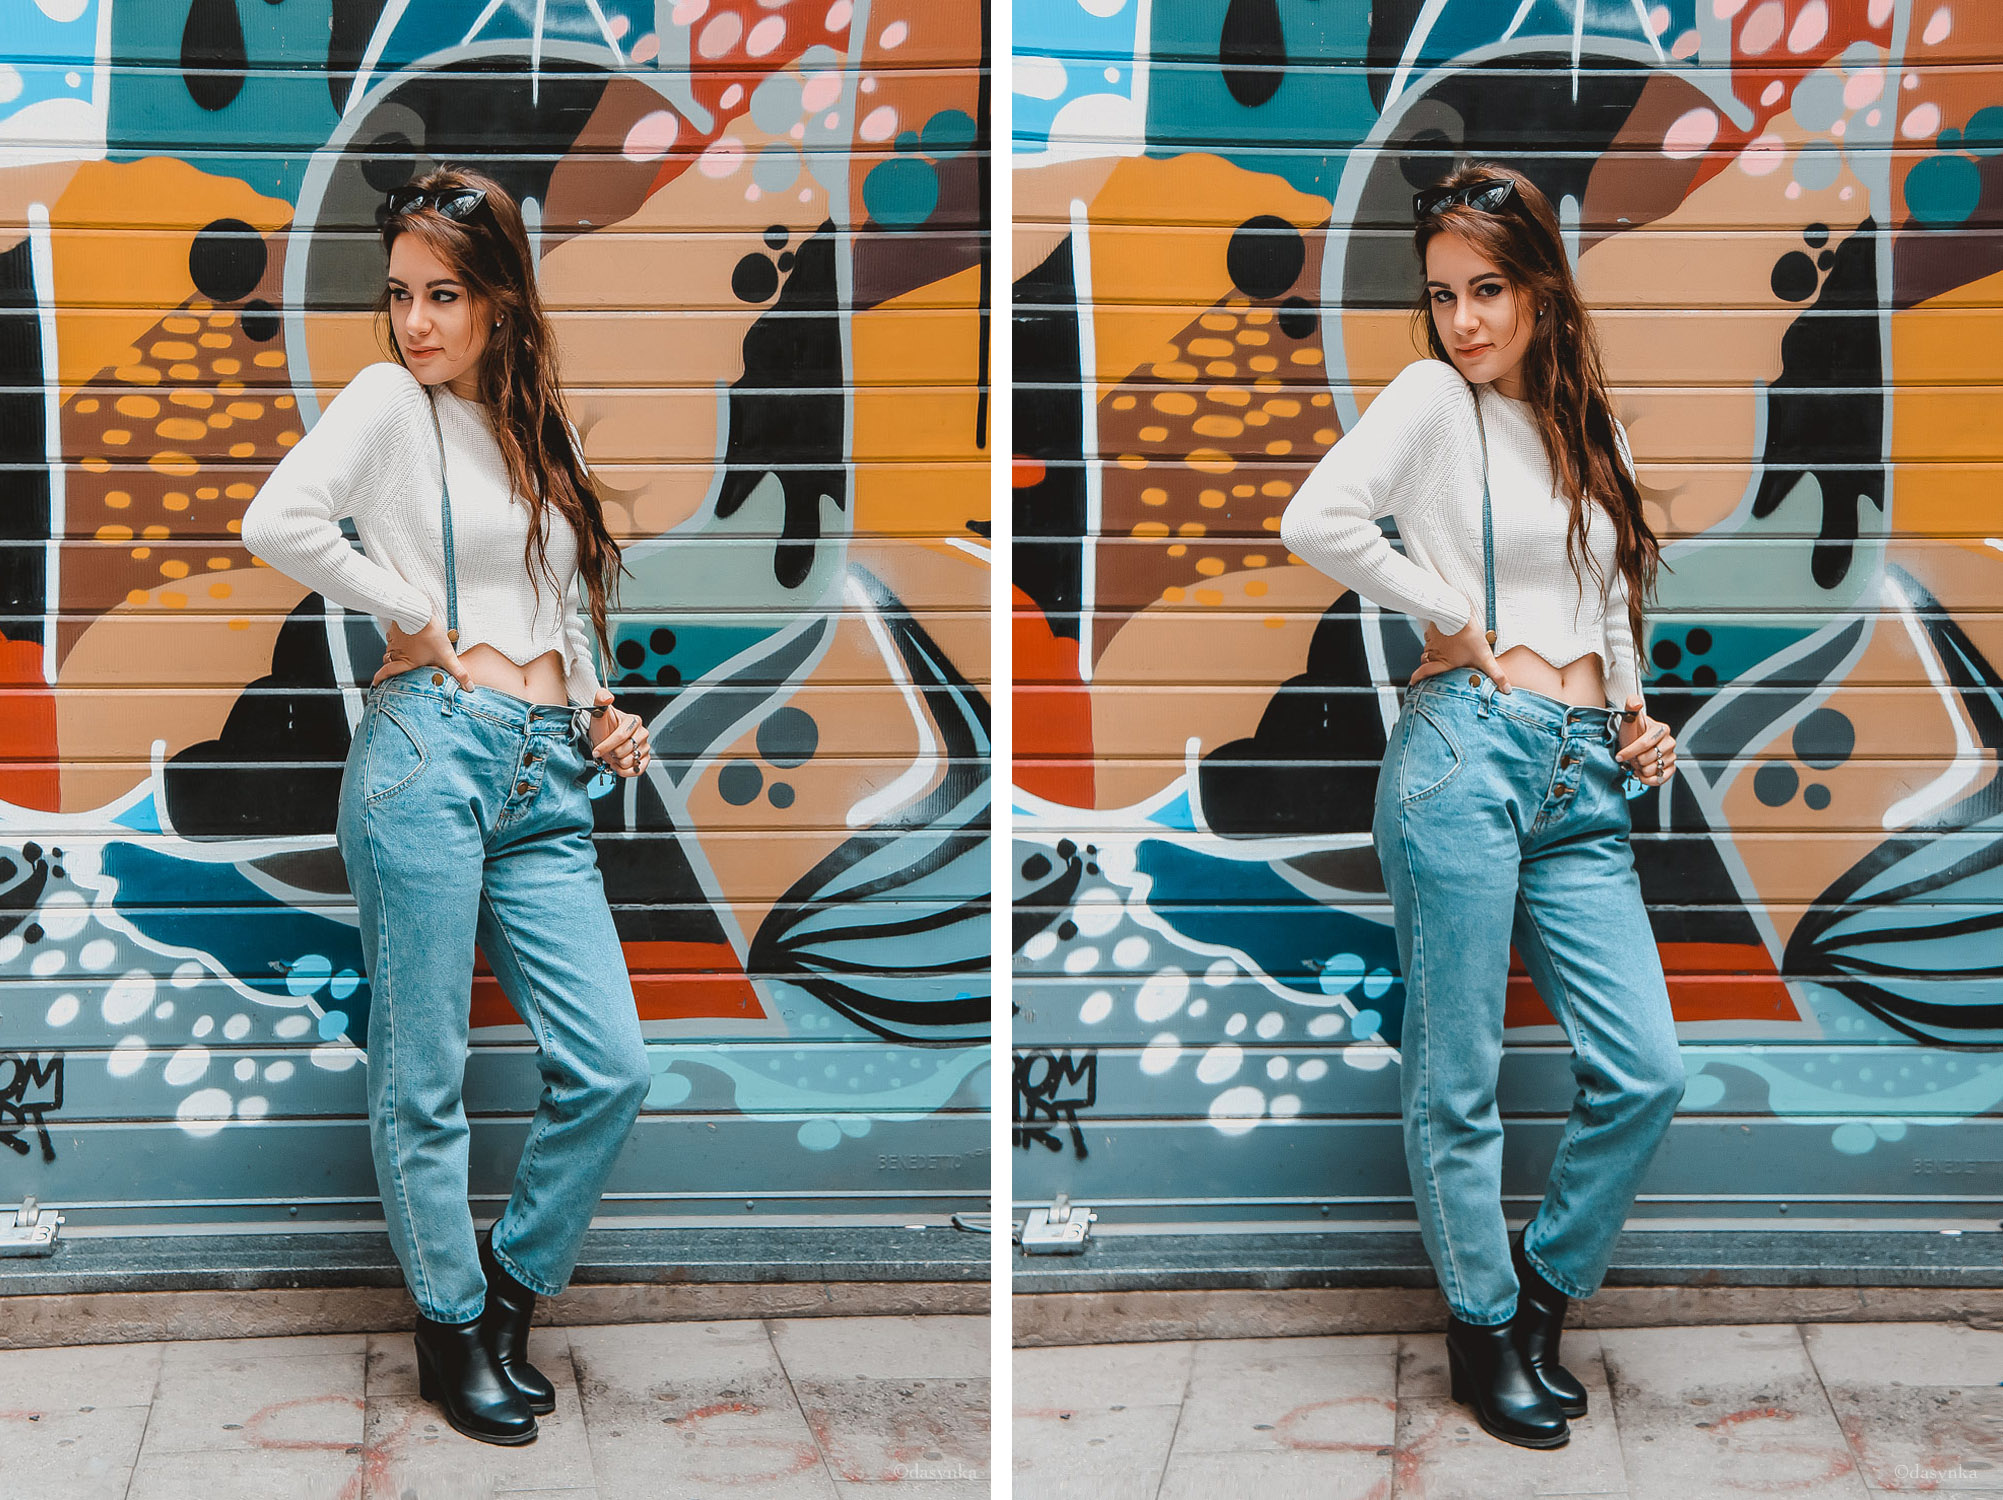 dasynka-fashion-blog-blogger-influencer-inspiration-shooting-model-globettrotter-travel-girl-lookbook-instagram-long-hair-street-style-casual-italy-lifestyle-outfit-poses-overalls-dungarees-white-crop-top-sweater-romwe-shein-primark-zara-hm-culotte-black-art-chole-bag-boots